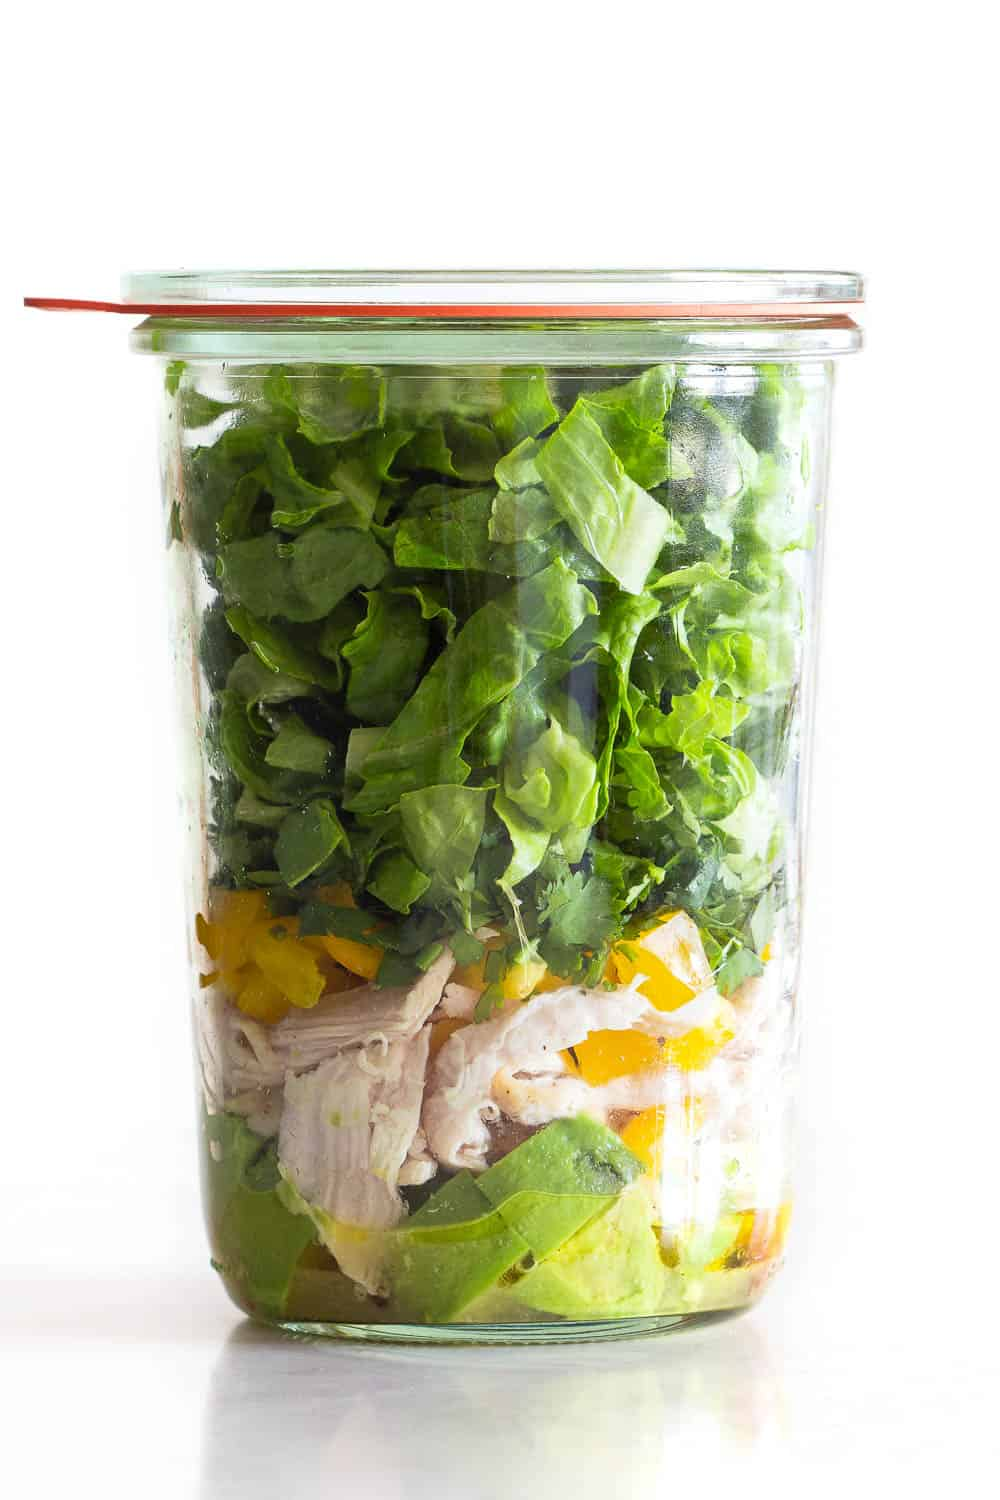 Meal Prep version of Avocado Chicken Salad layered in a glass jar